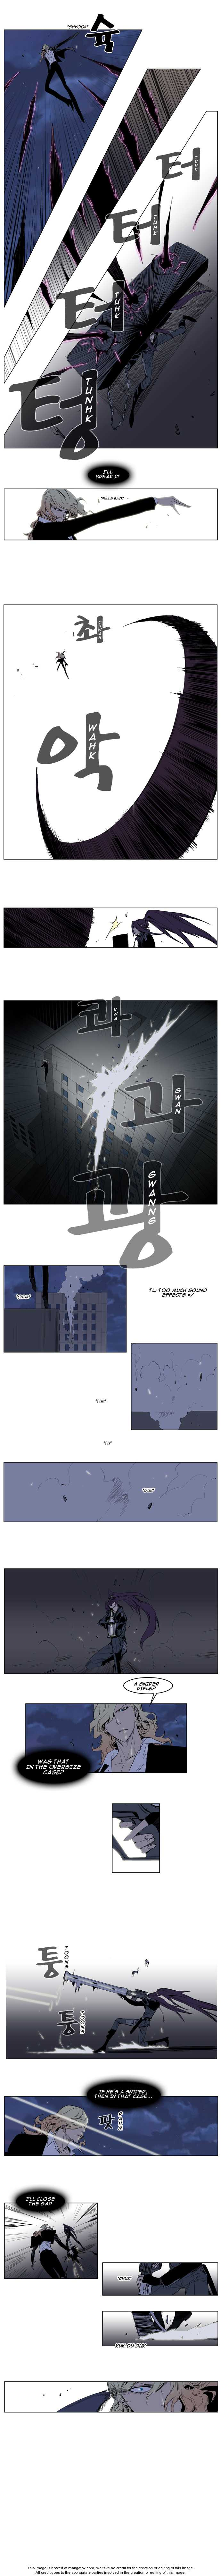 Noblesse 118 Page 2